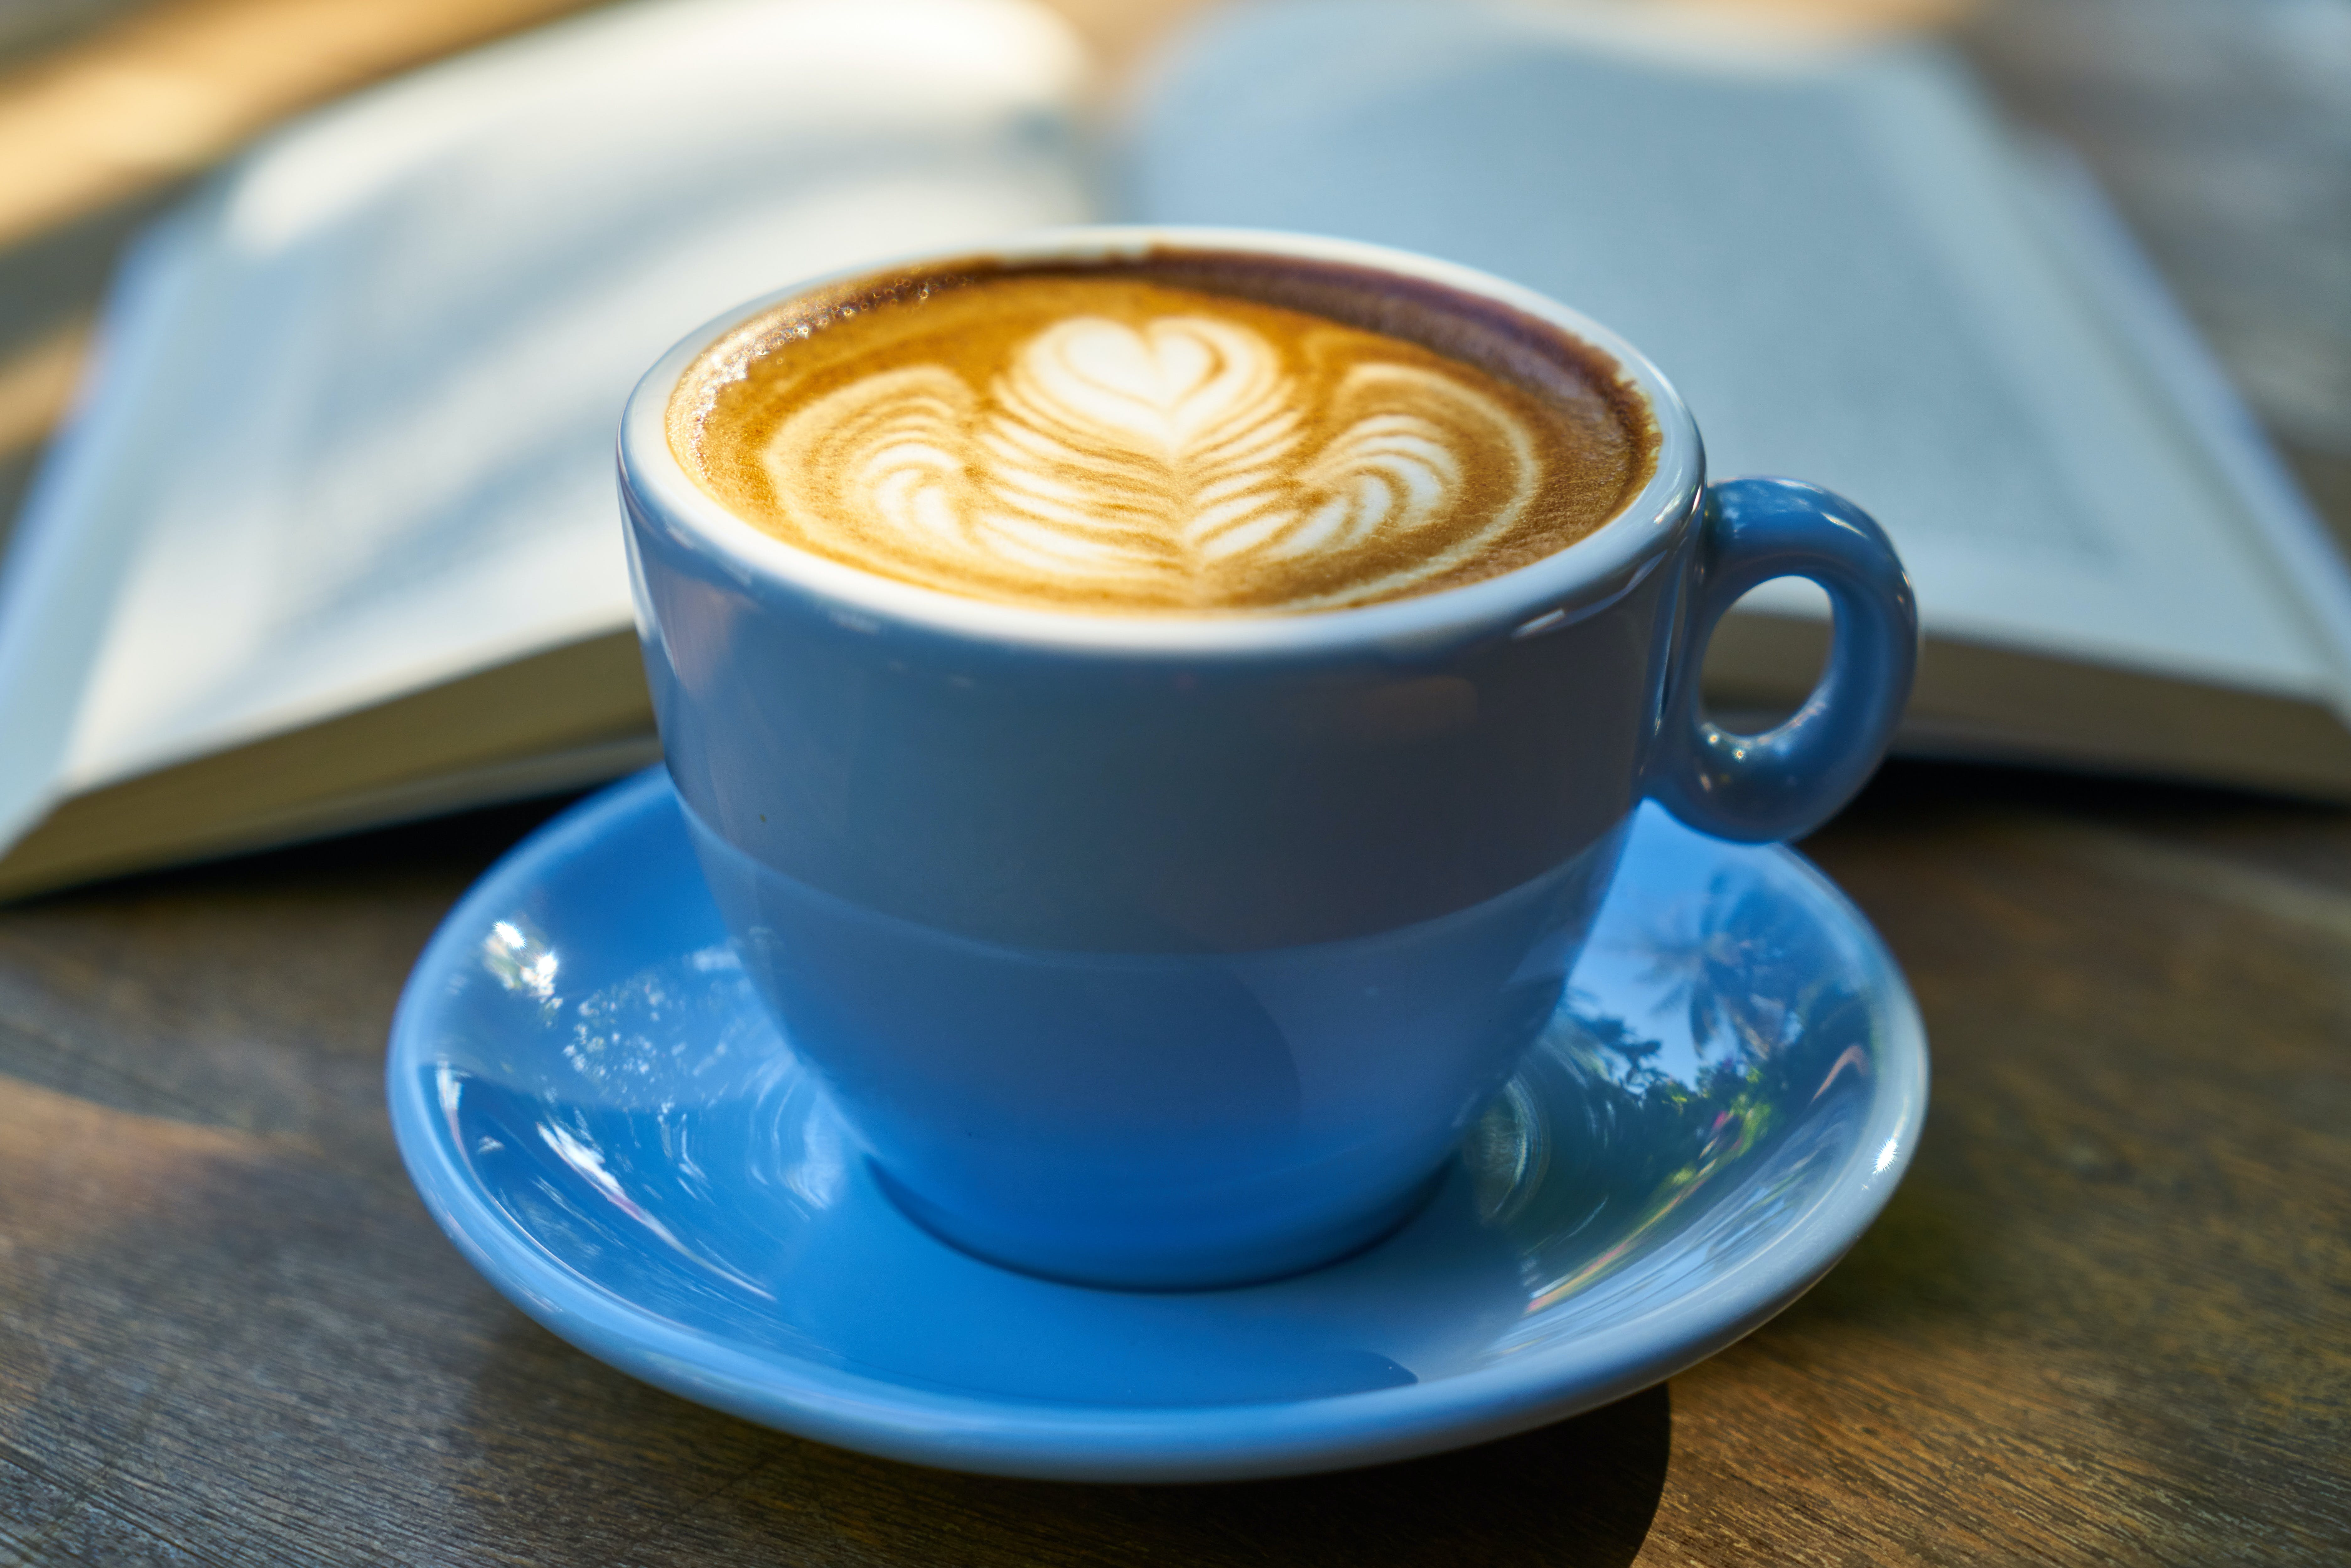 Ceramic Cup Filled With Coffee on Saucer